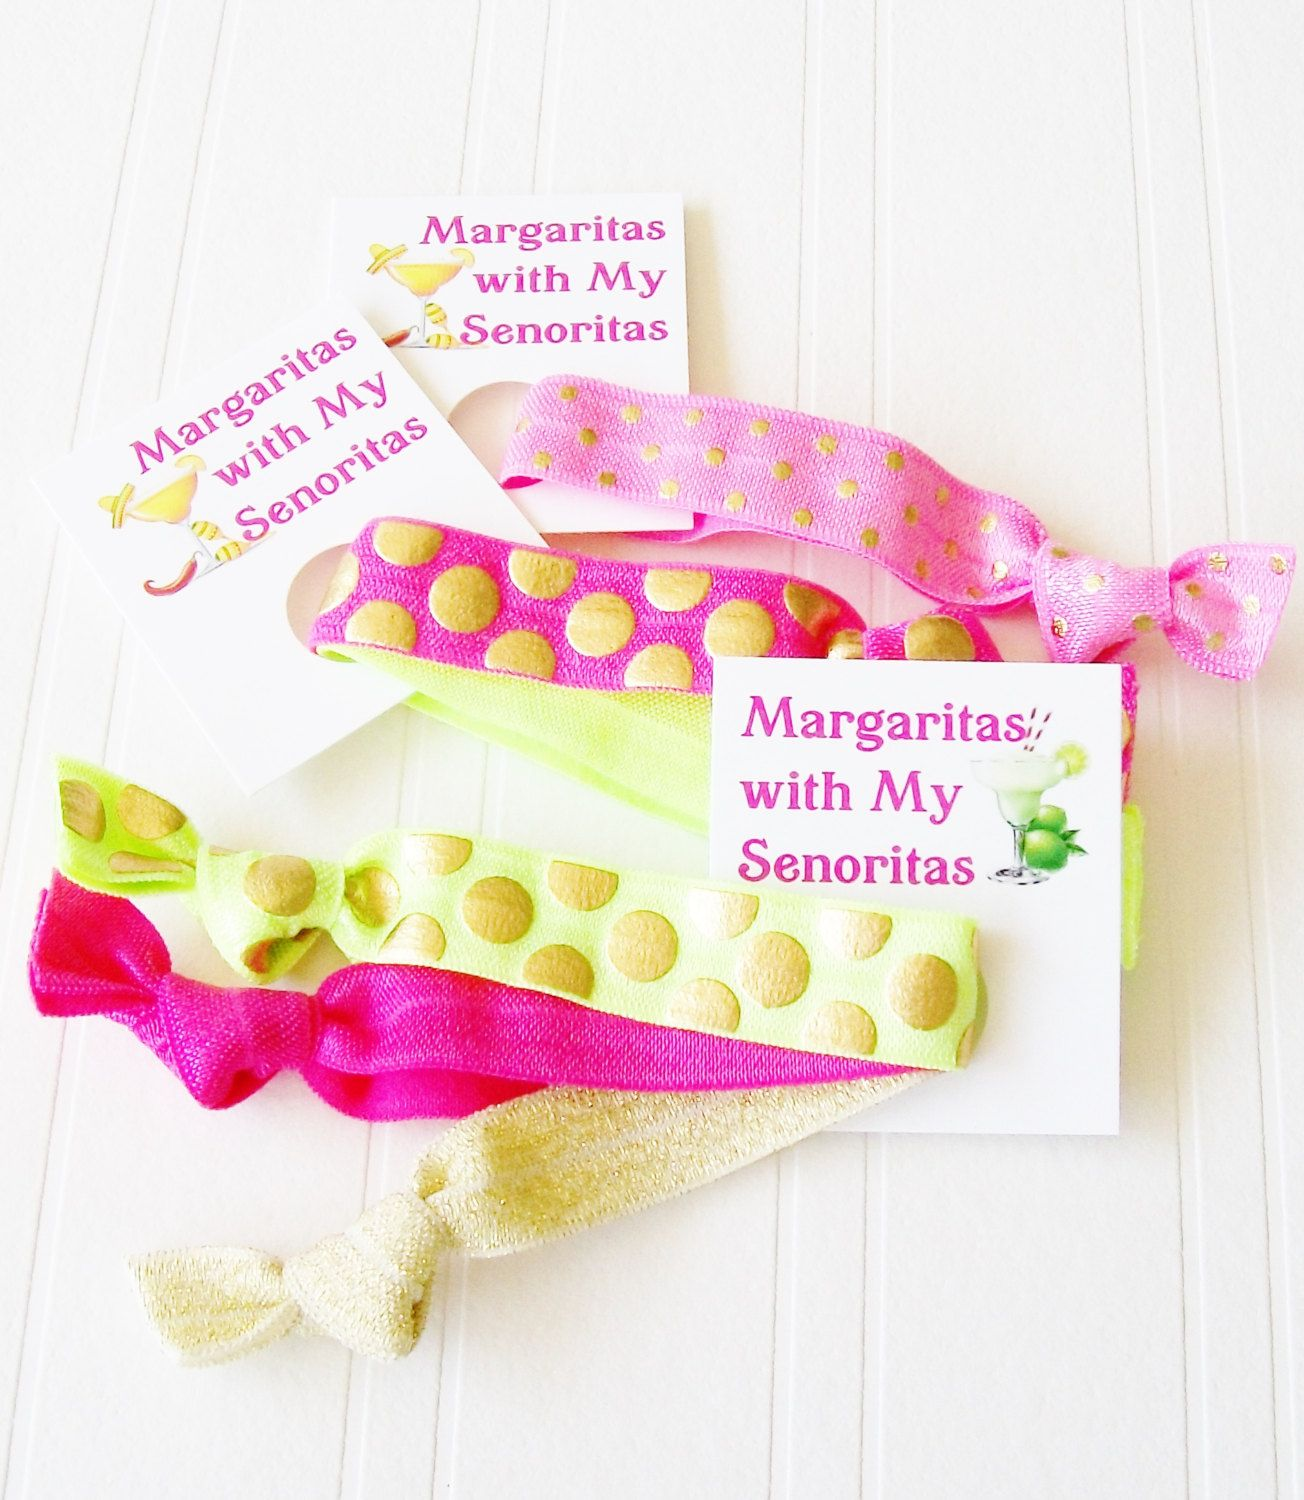 Margaritas with my Senoritas, Hair Ties and Gift Tag, Margarita Hair Don't Care  Party Favor Beach Bachelorette 21st Birthday Hangover Kit by LuckyGirlHairTies on Etsy